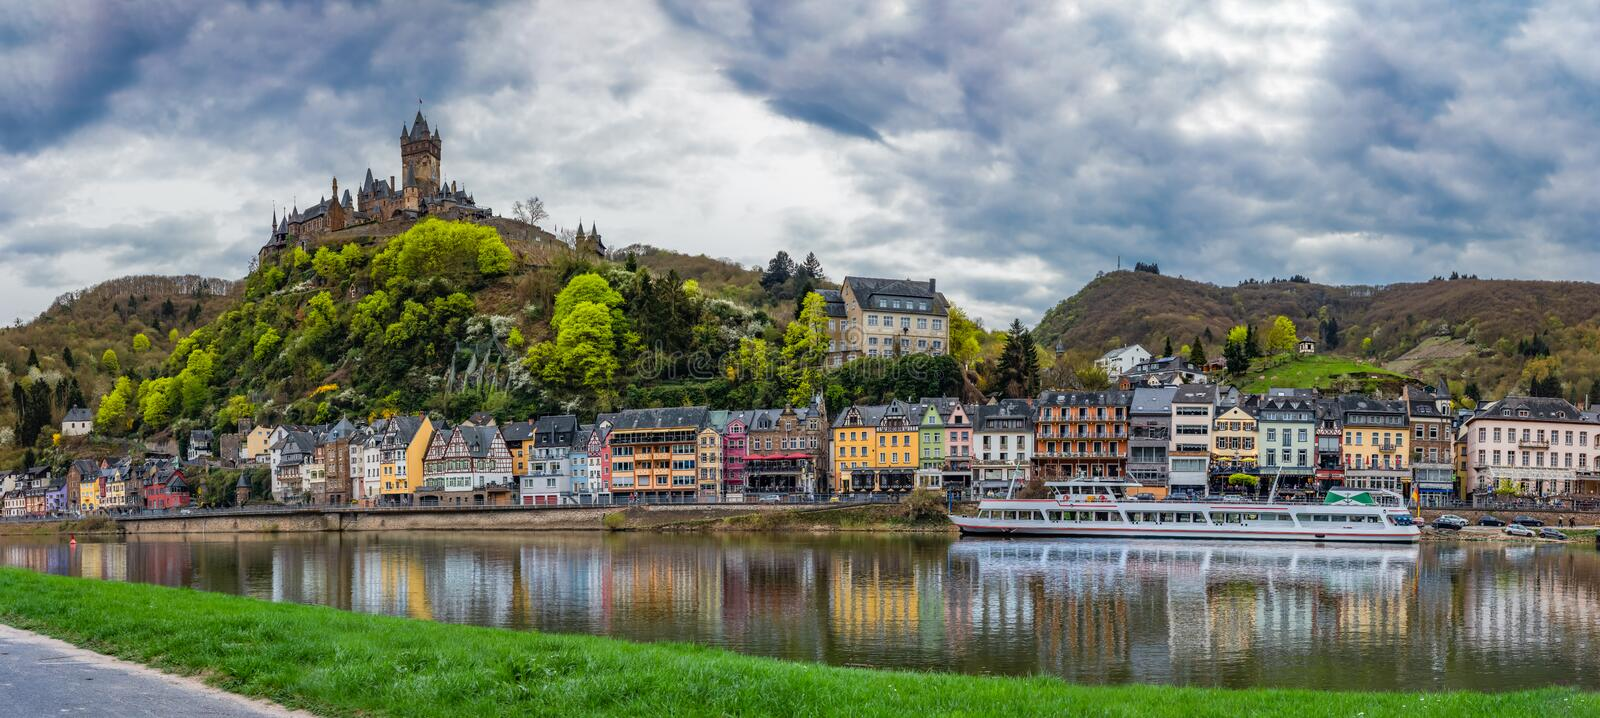 Village Panorama on River with Castle on Hill, Cochem, Germany royalty free stock photography